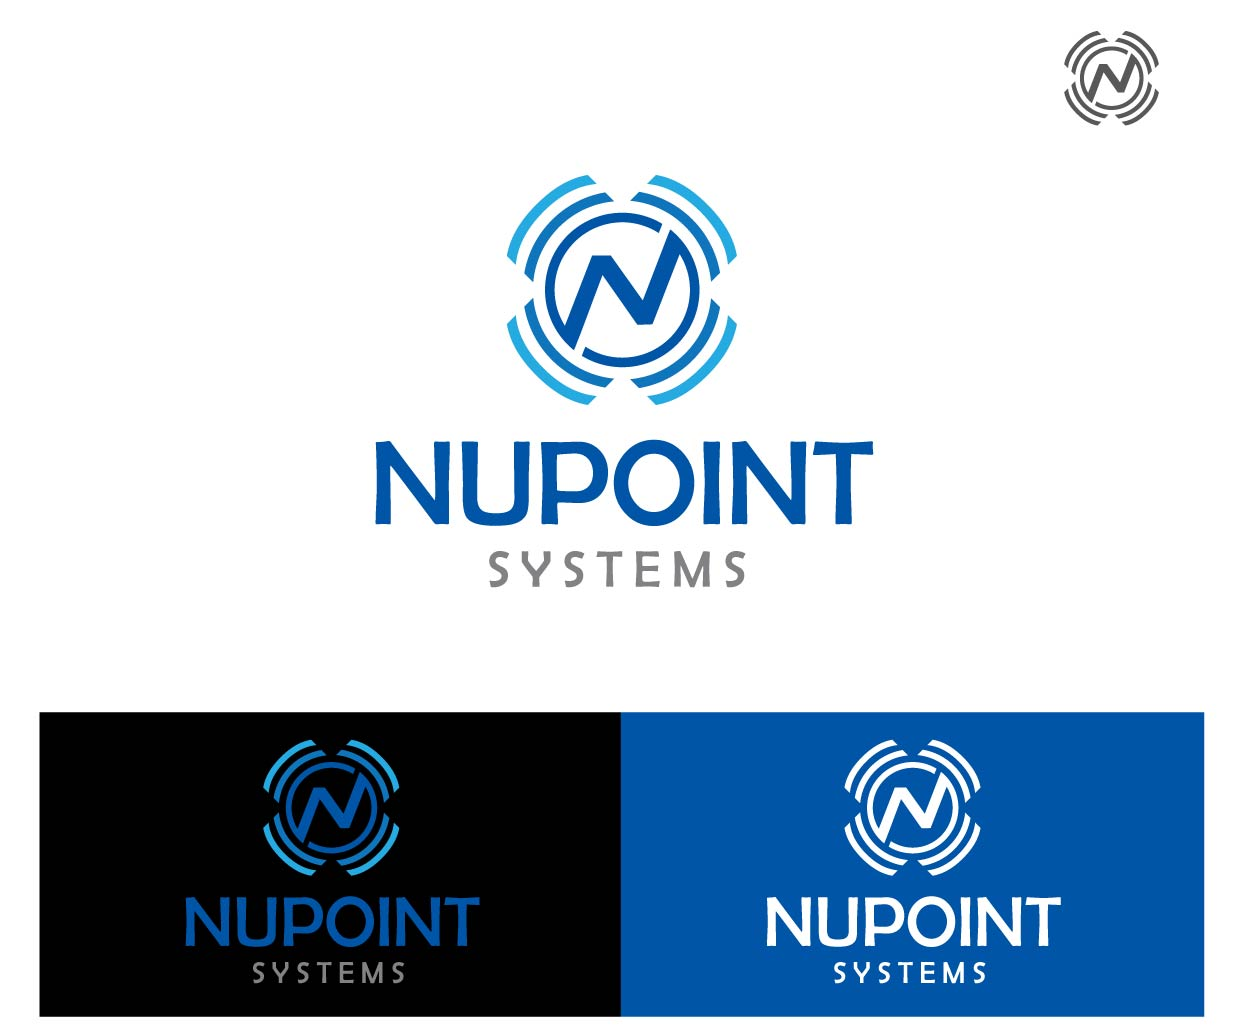 Logo Design by peps - Entry No. 72 in the Logo Design Contest Unique Logo Design Wanted for Nupoint Systems Inc..